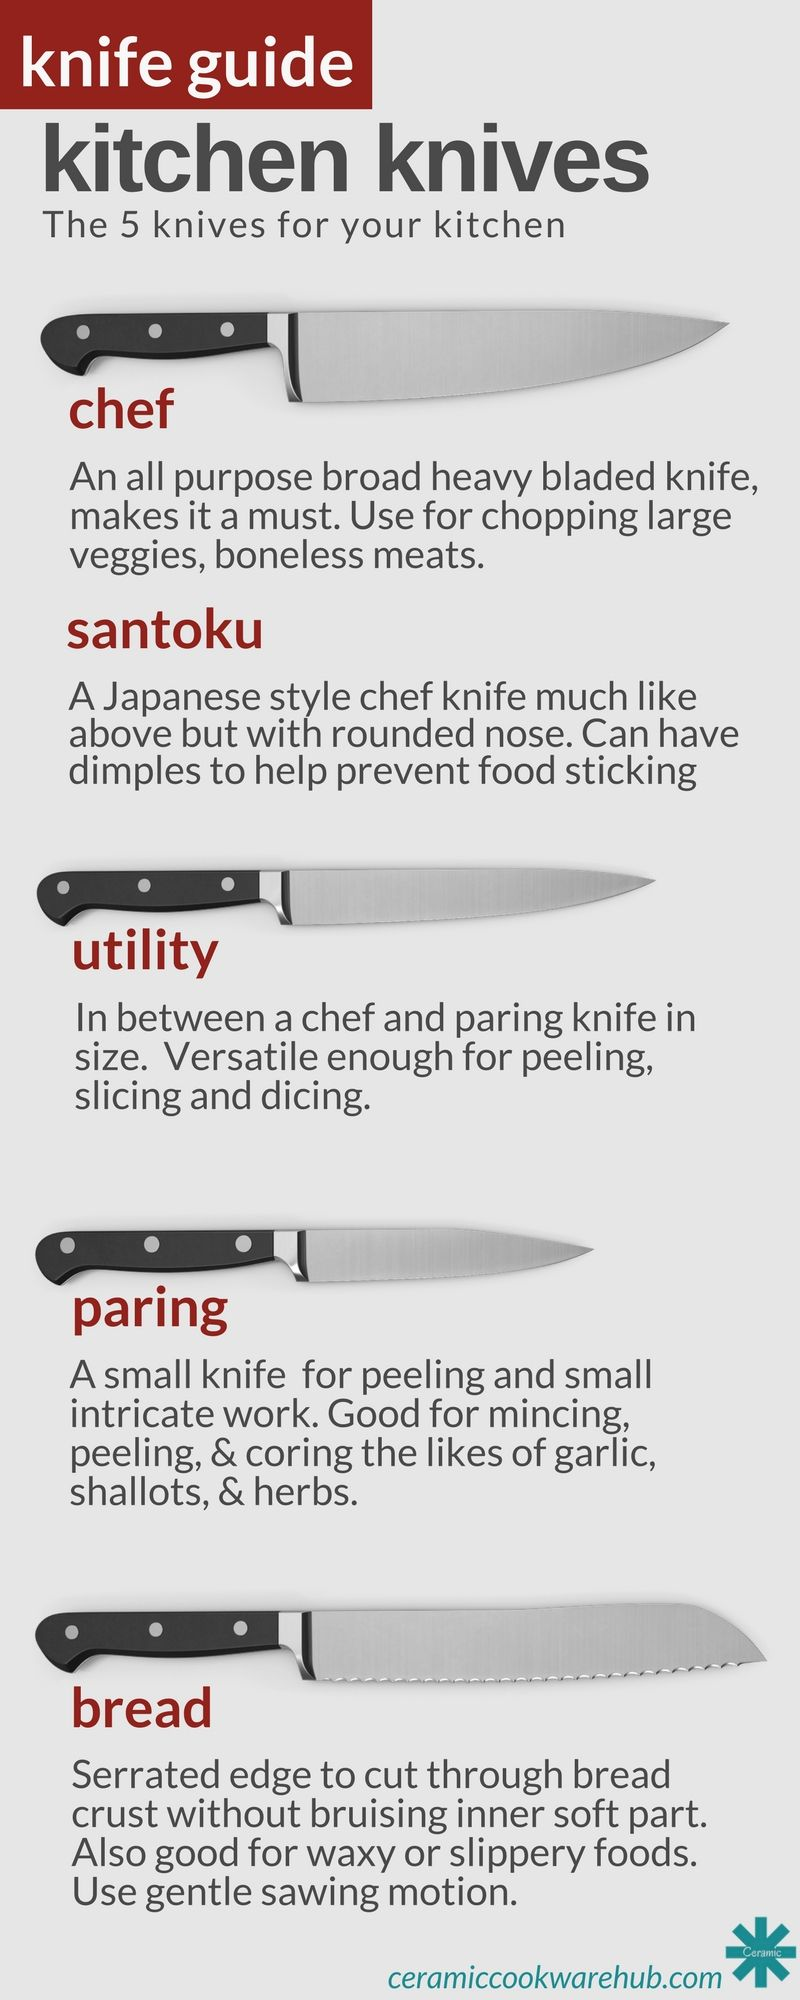 Best Ceramic Knife Set For Kitchen Buying Guide 2021 Kitchen Knives Knife Guide Ceramic Knife